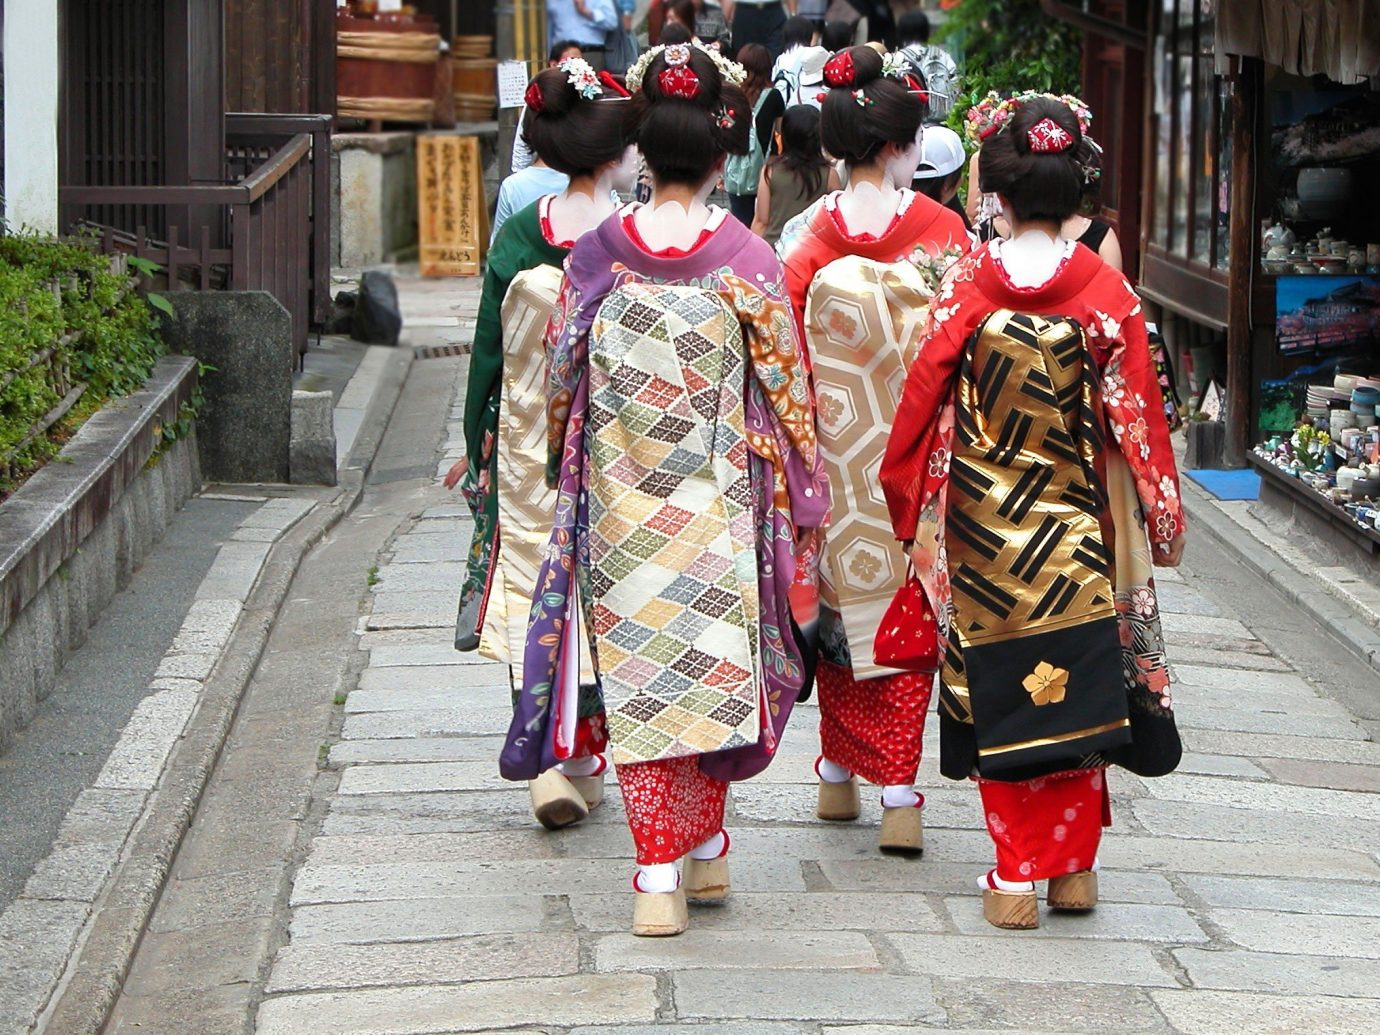 Style + Design outdoor ground person woman clothing sidewalk costume geisha tradition profession temple